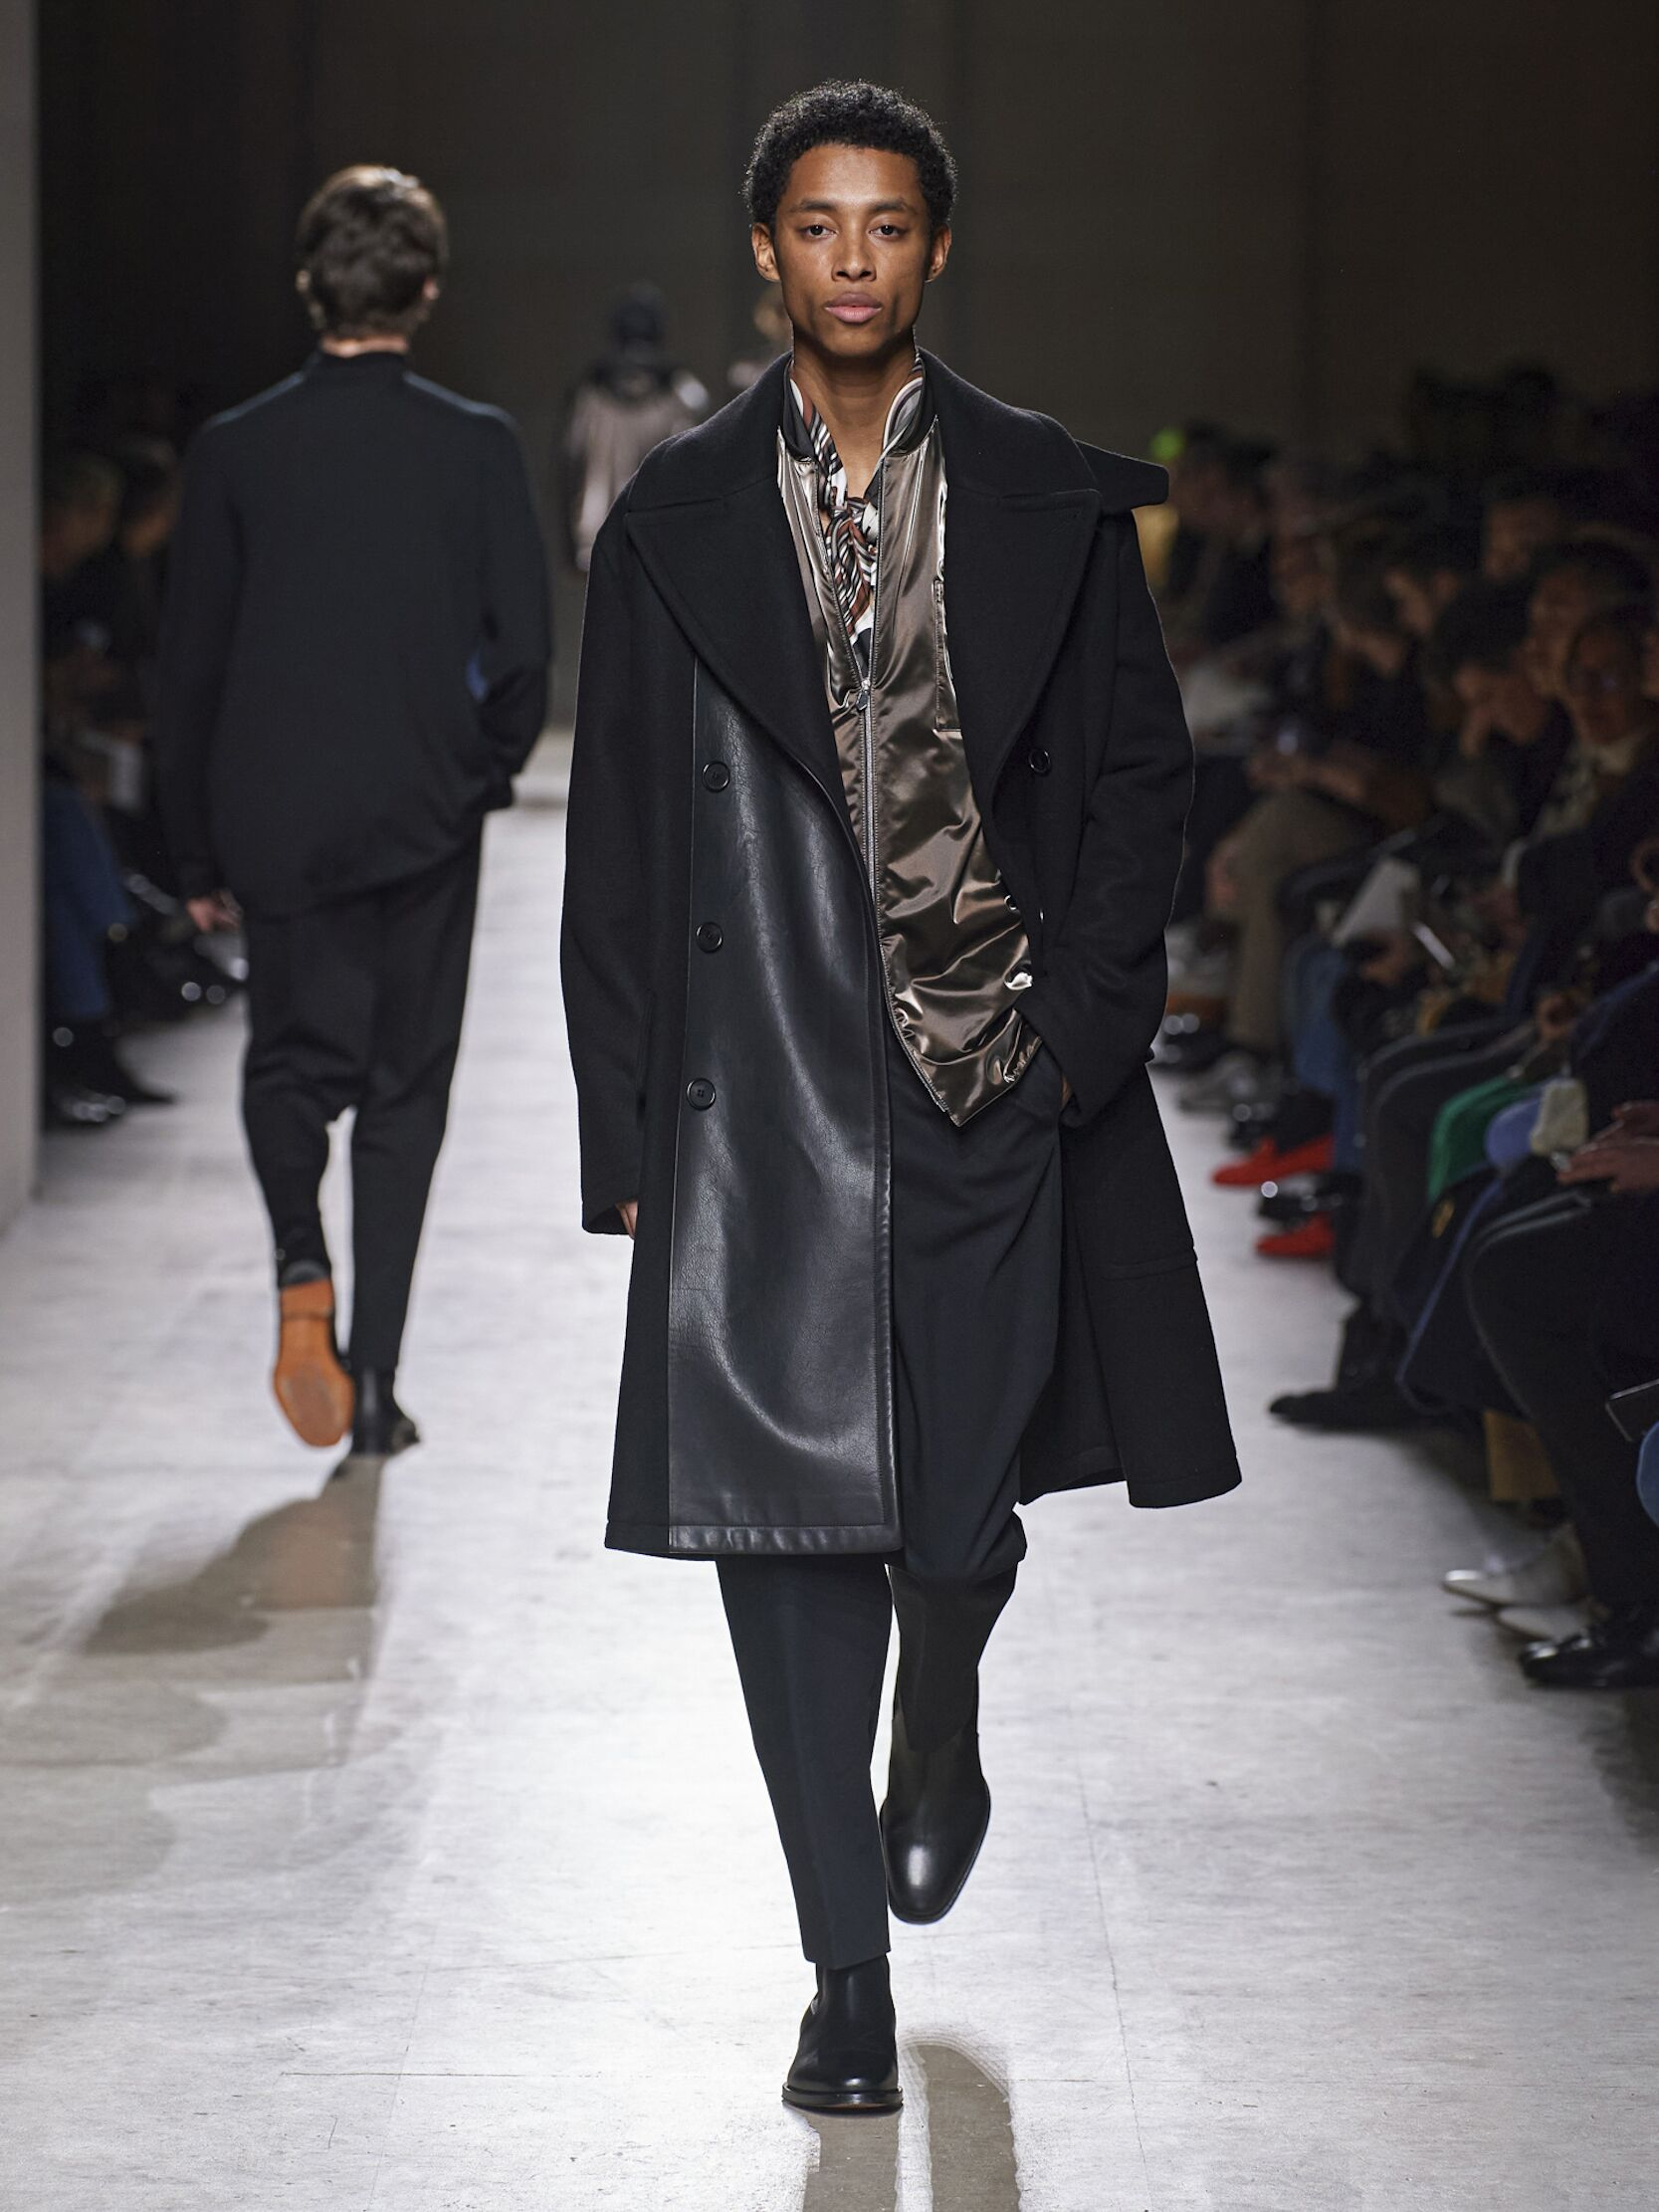 FW 2020-21 Hermès Fashion Show Paris